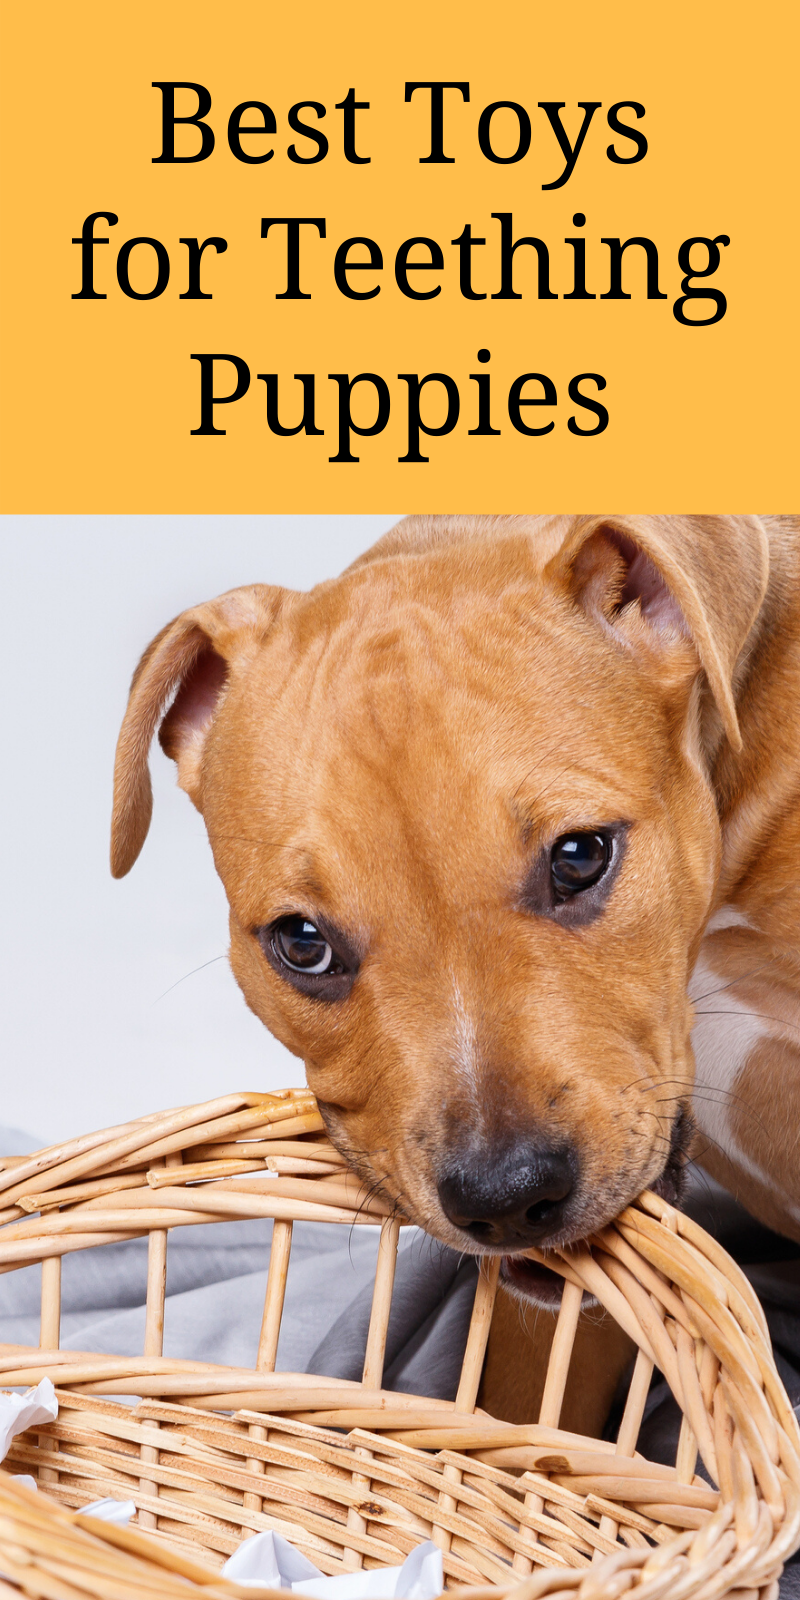 Best Toys For Teething Puppies Top Staffy Teething Toy Reviews In 2020 Puppies Staffy Dog Cute Dog Collars